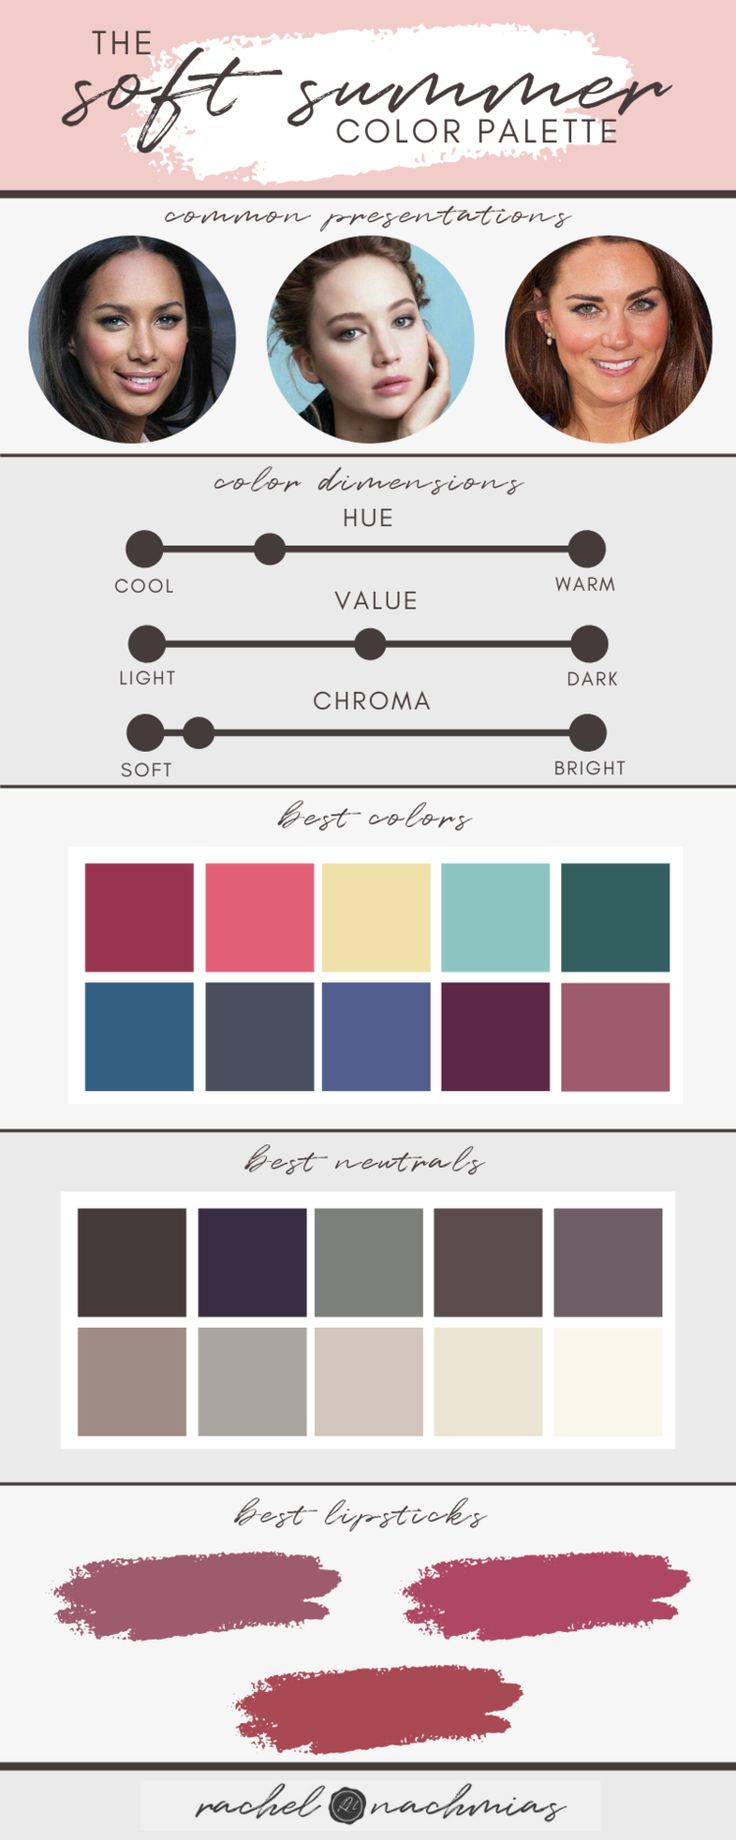 A quick overview of the Soft Summer color palette, including Soft Summer celebri...